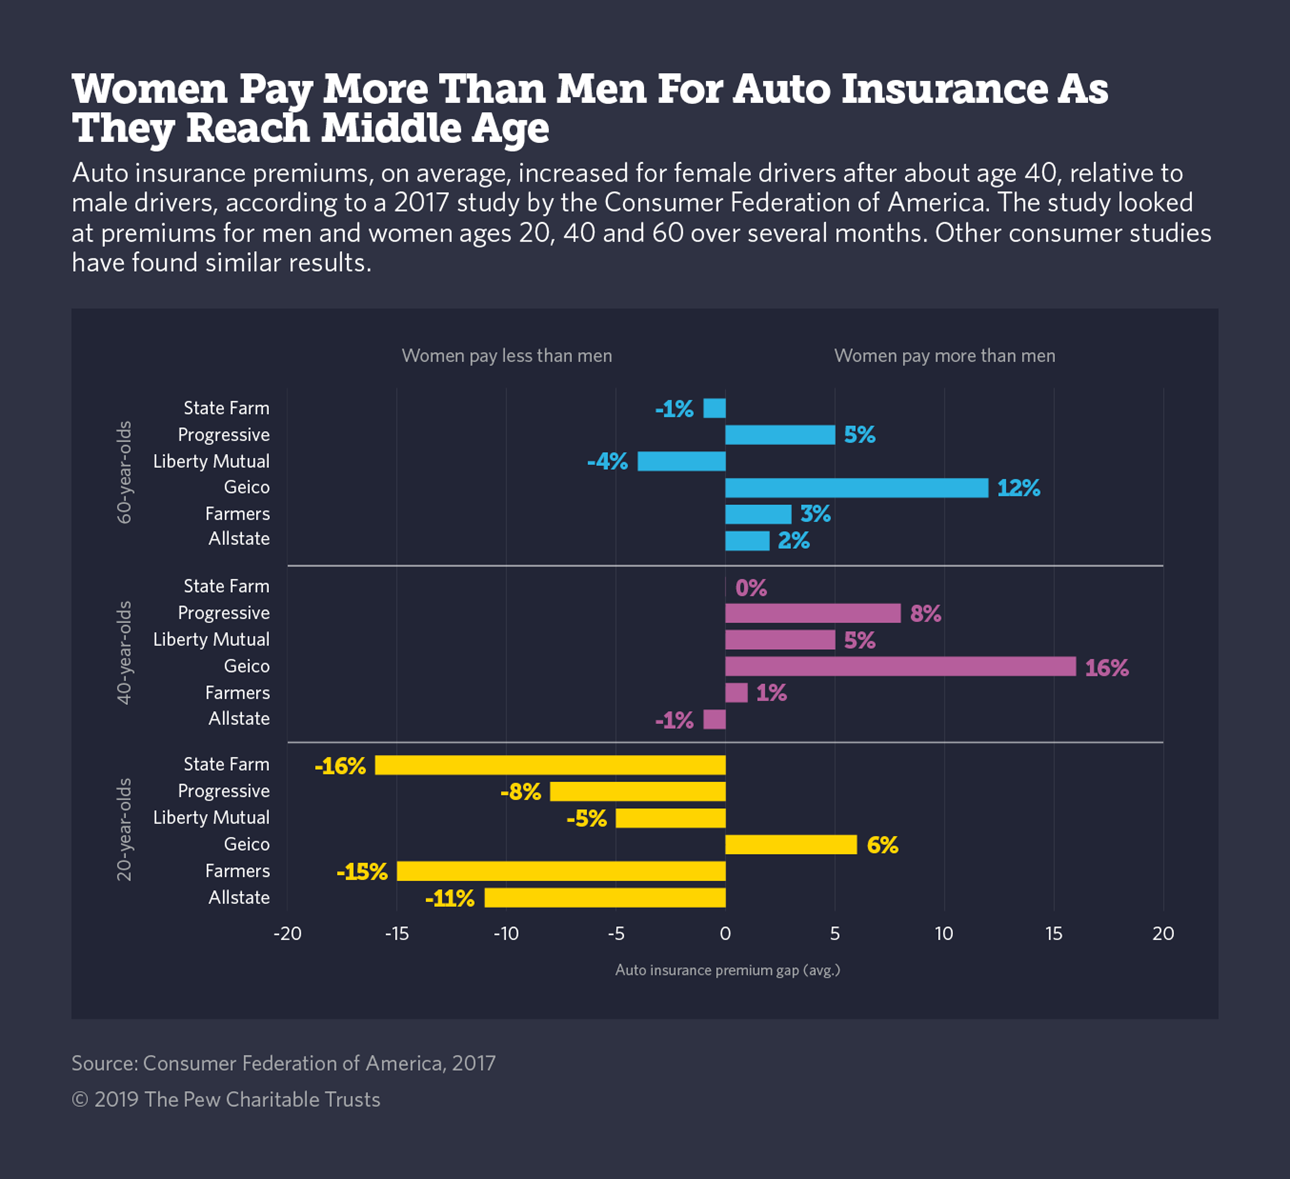 Do Men Pay More for Auto Insurance?